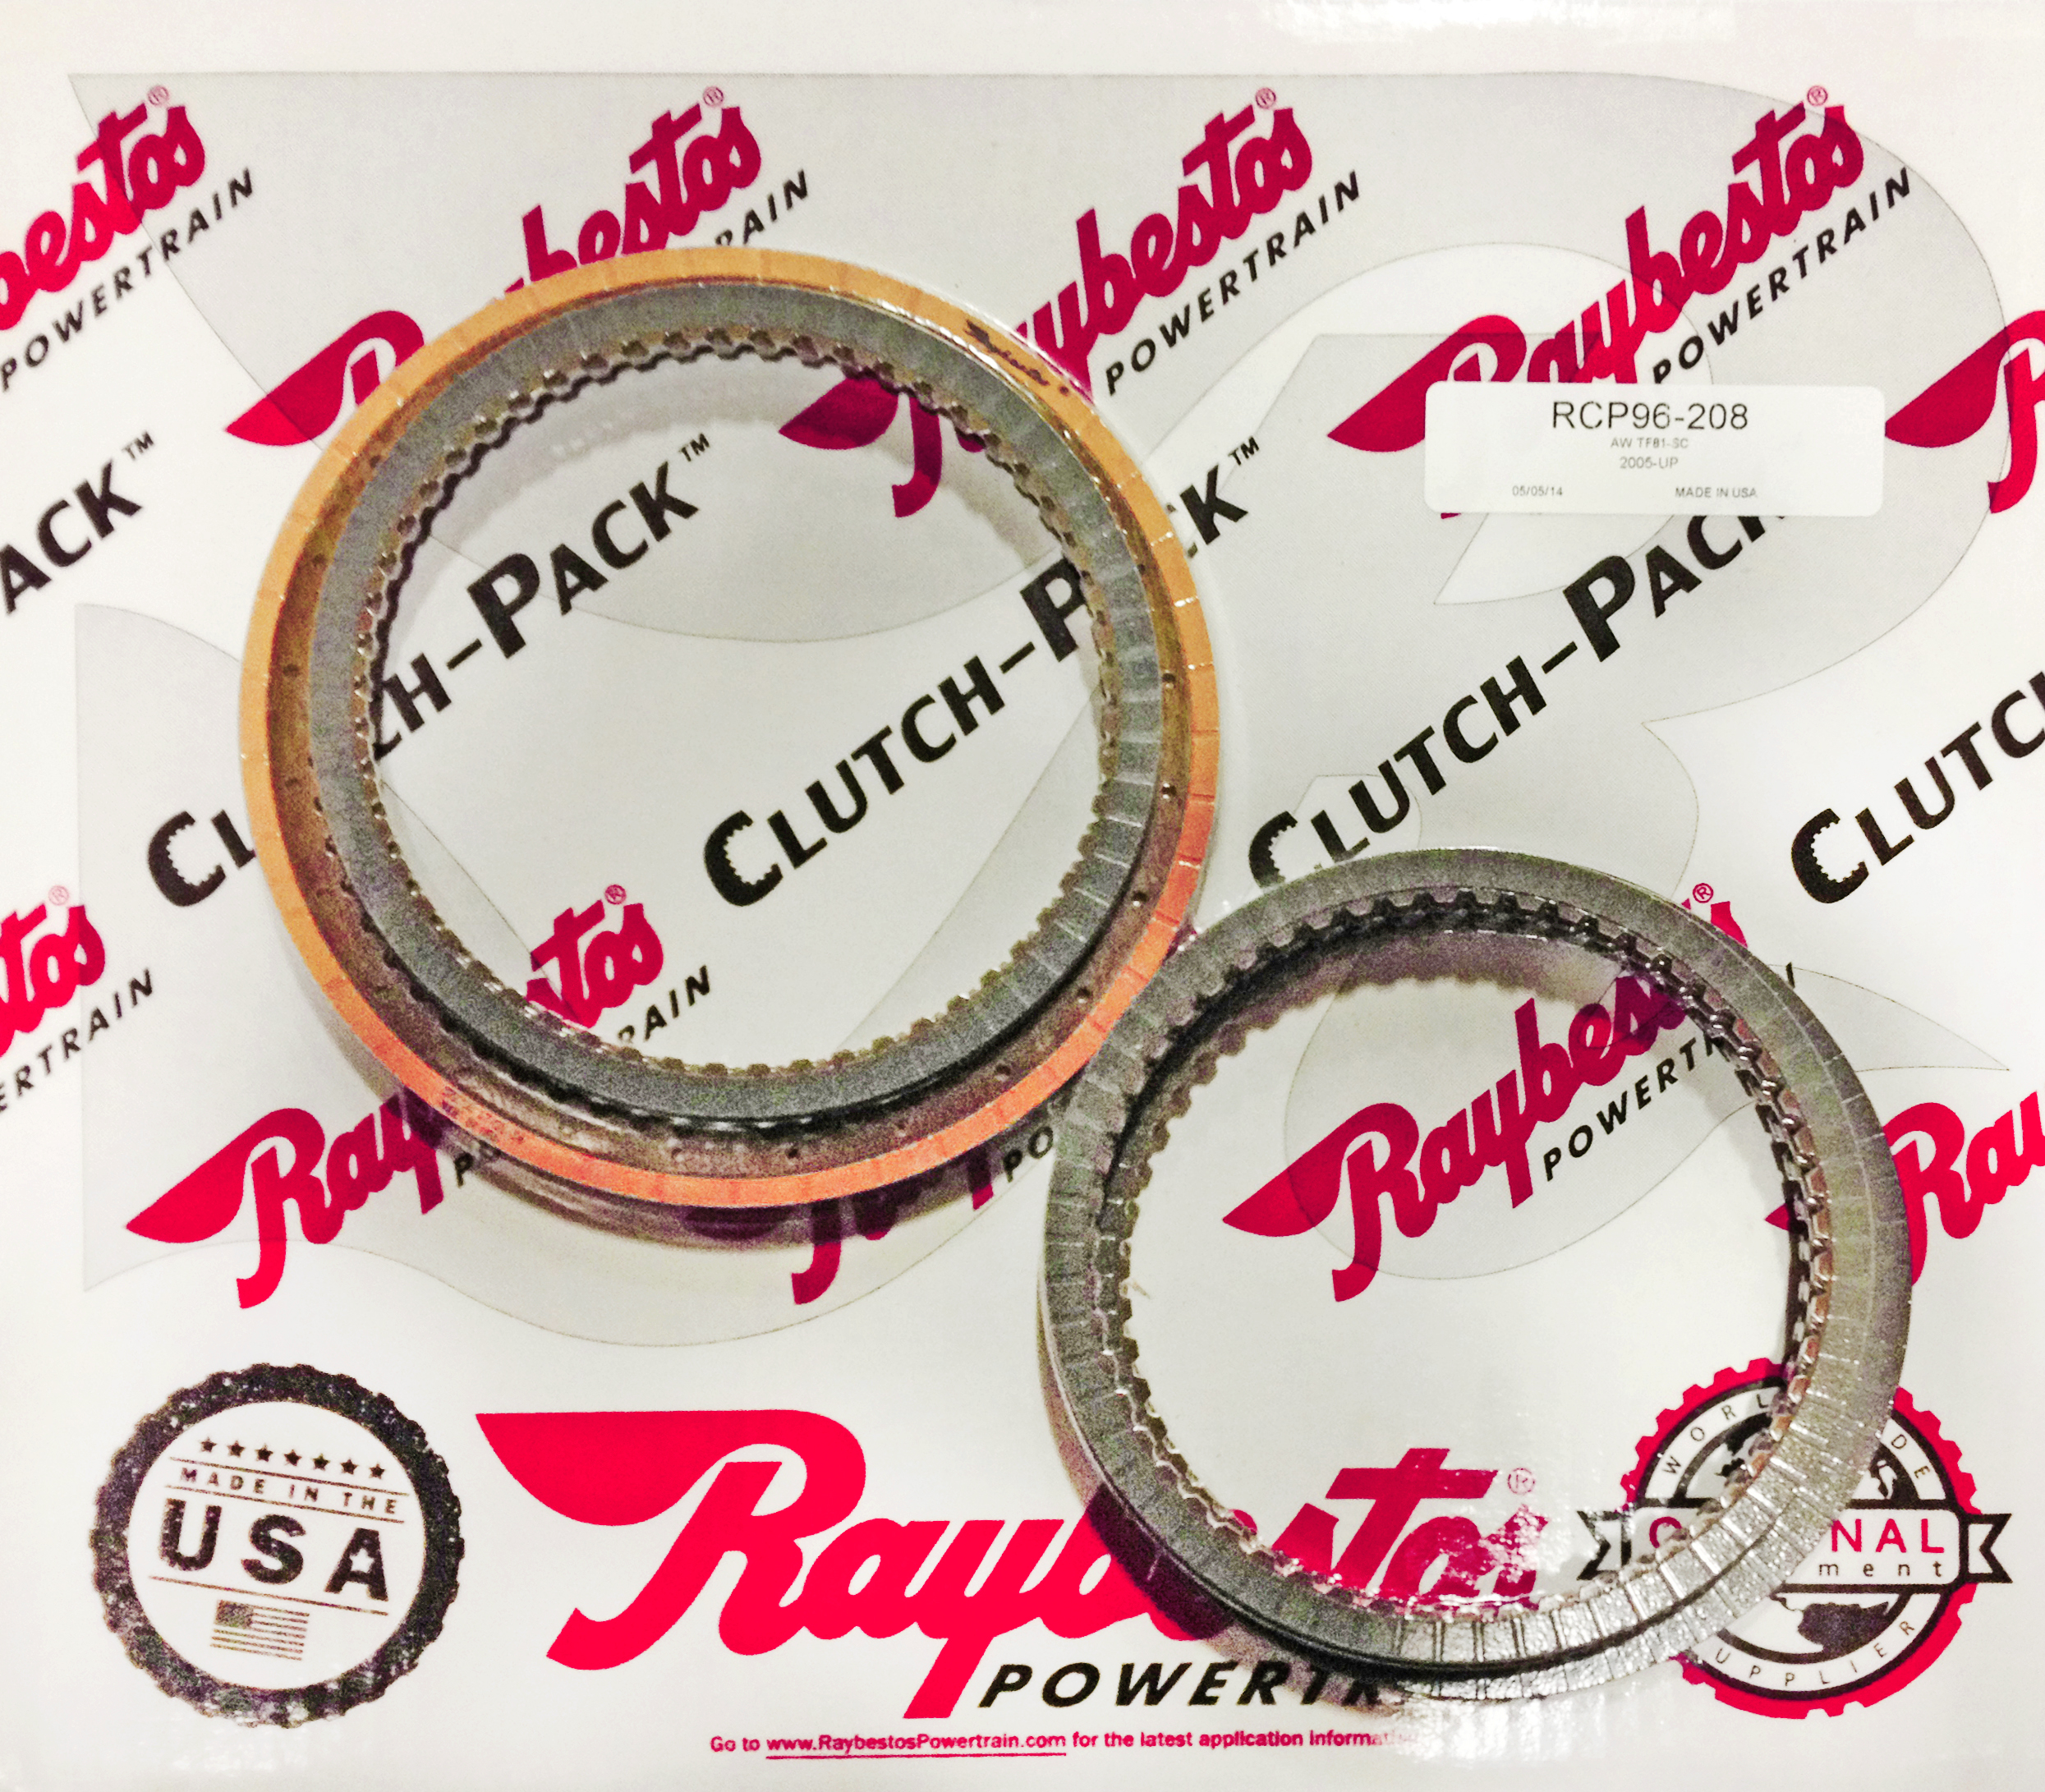 TF81SC Friction Clutch Pack